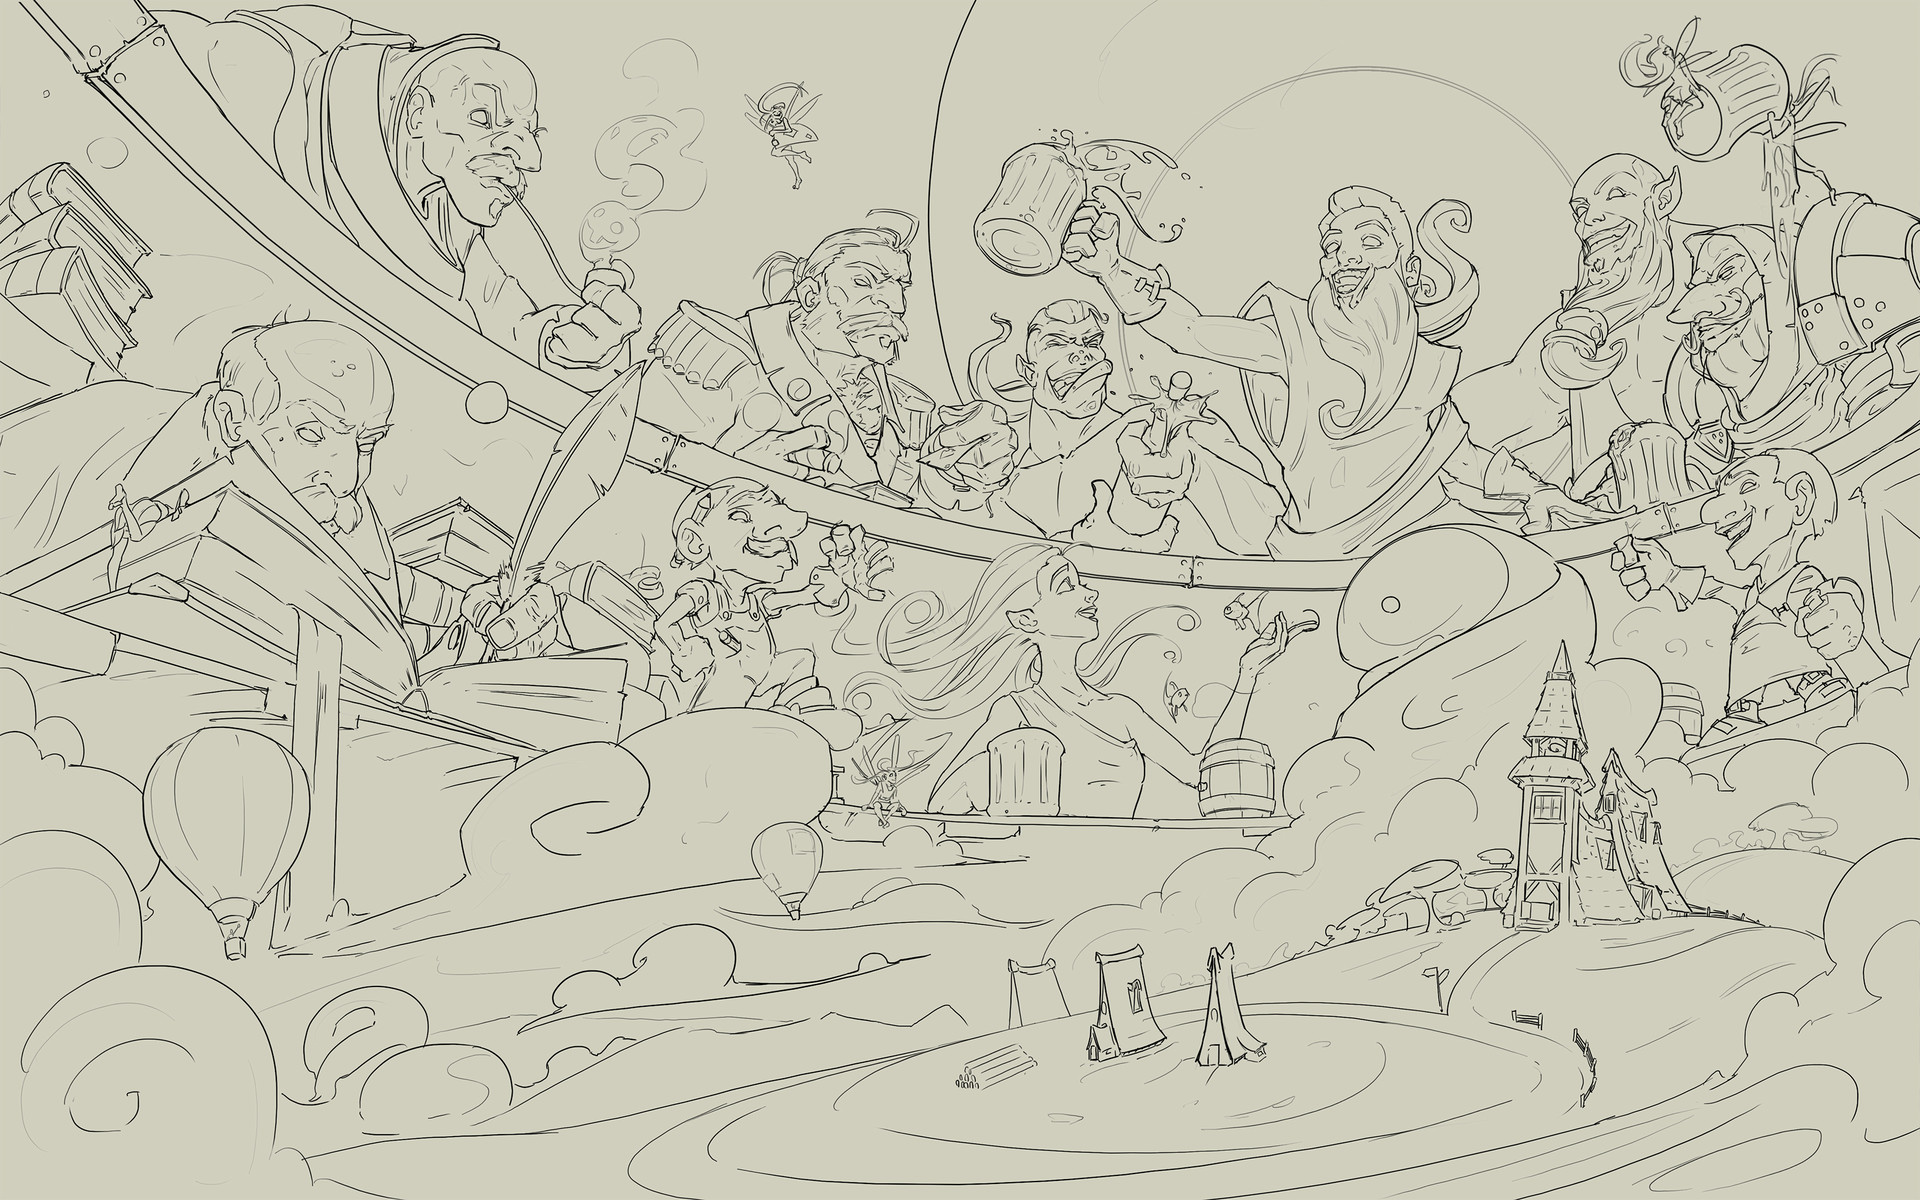 Nicolas morales council of gods whaleshares lineart